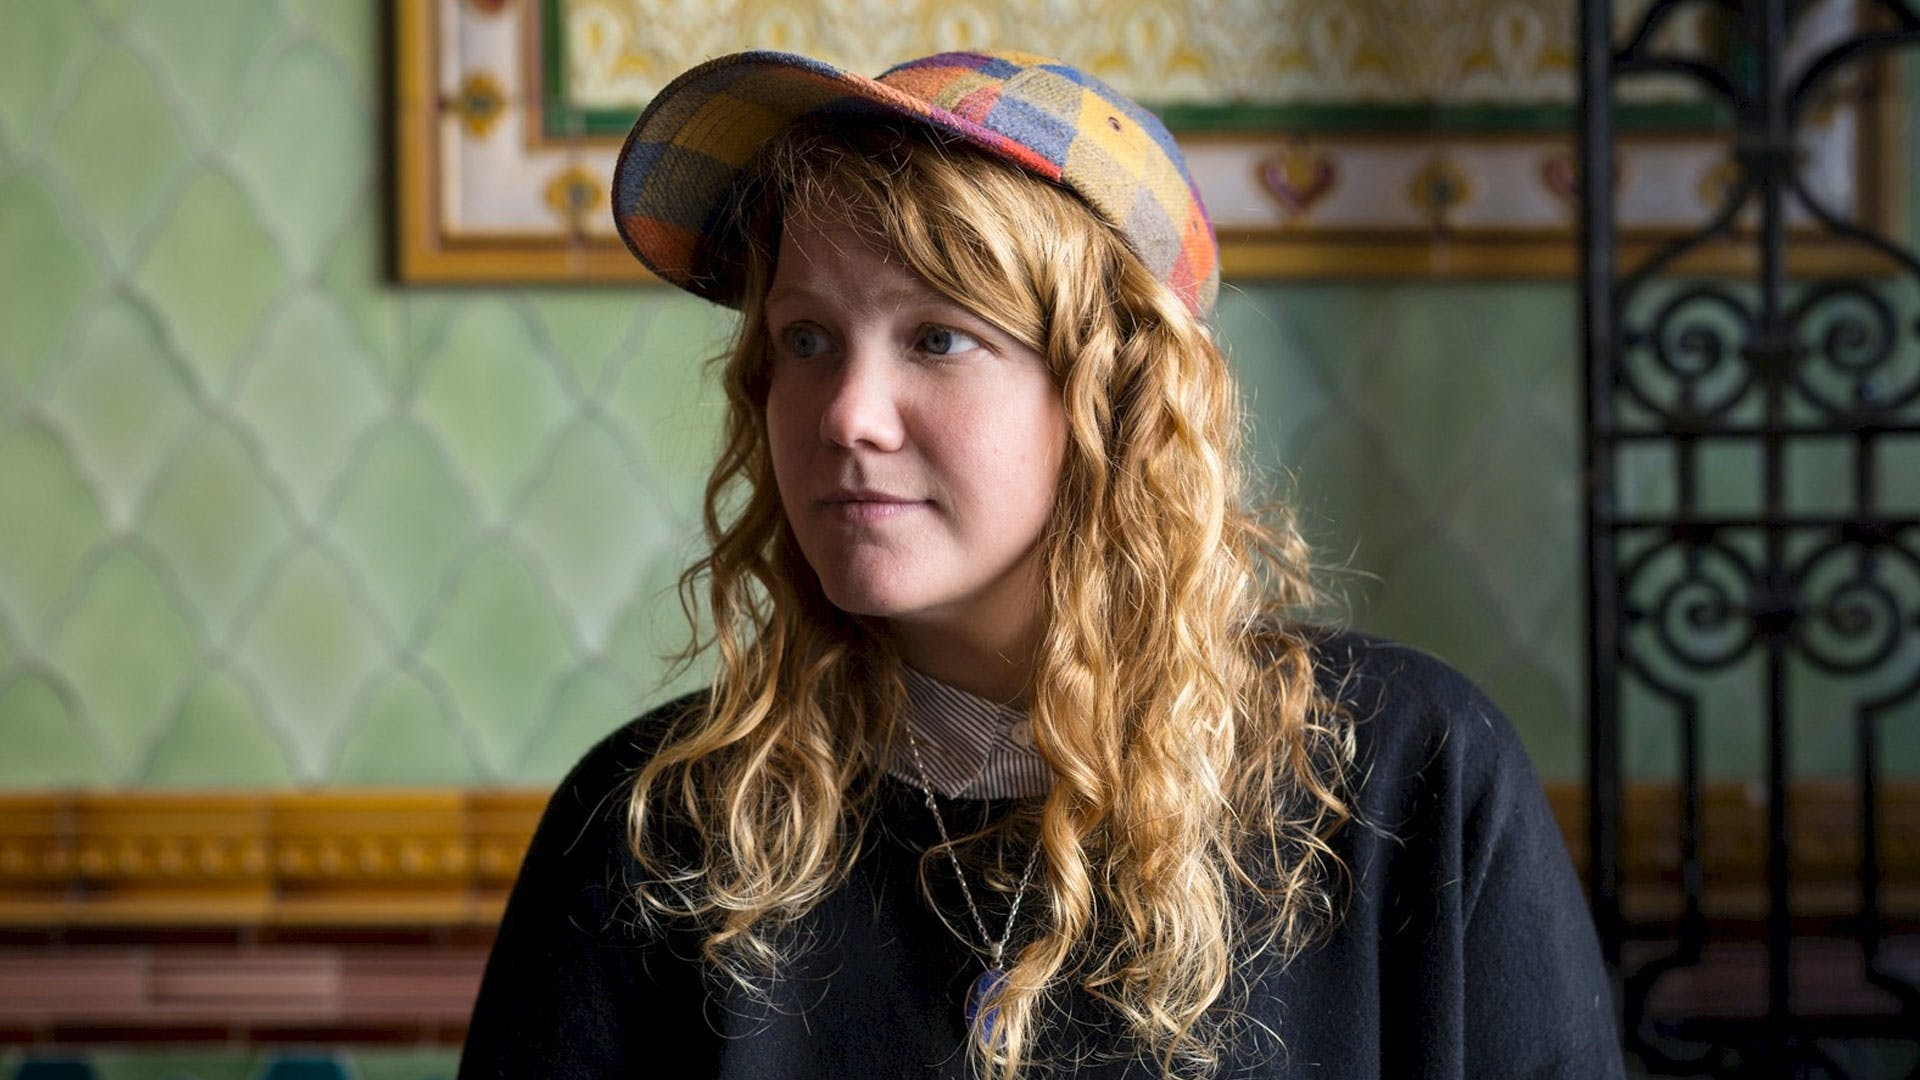 TOP FIVE: KATE TEMPEST